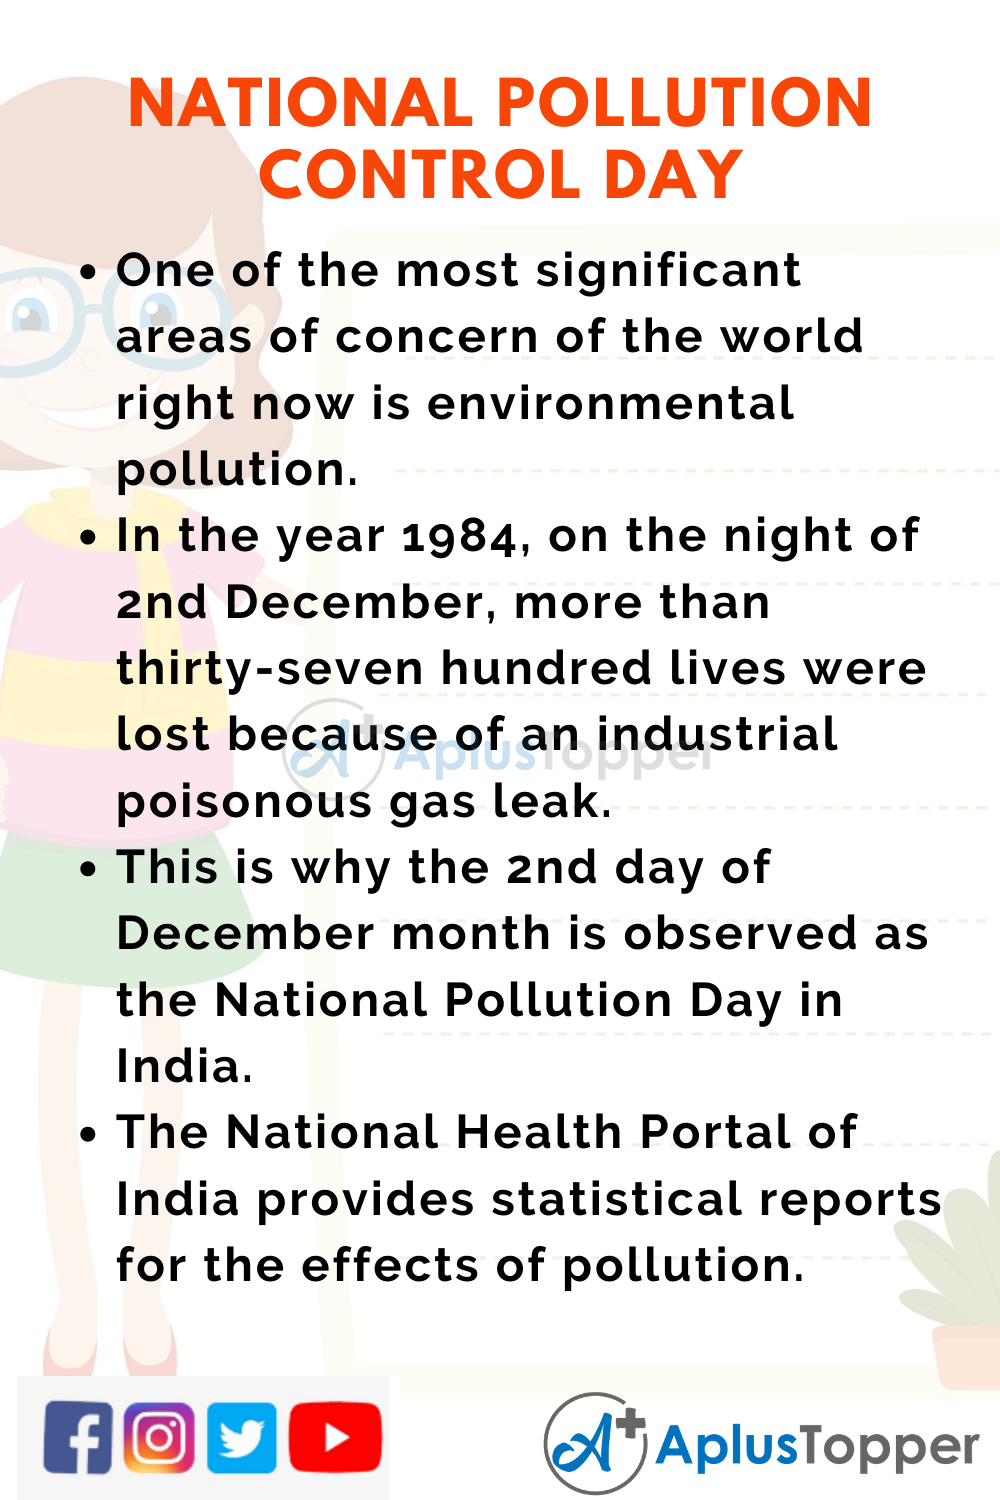 10 Lines On National Pollution Control Day for Higher Class Students